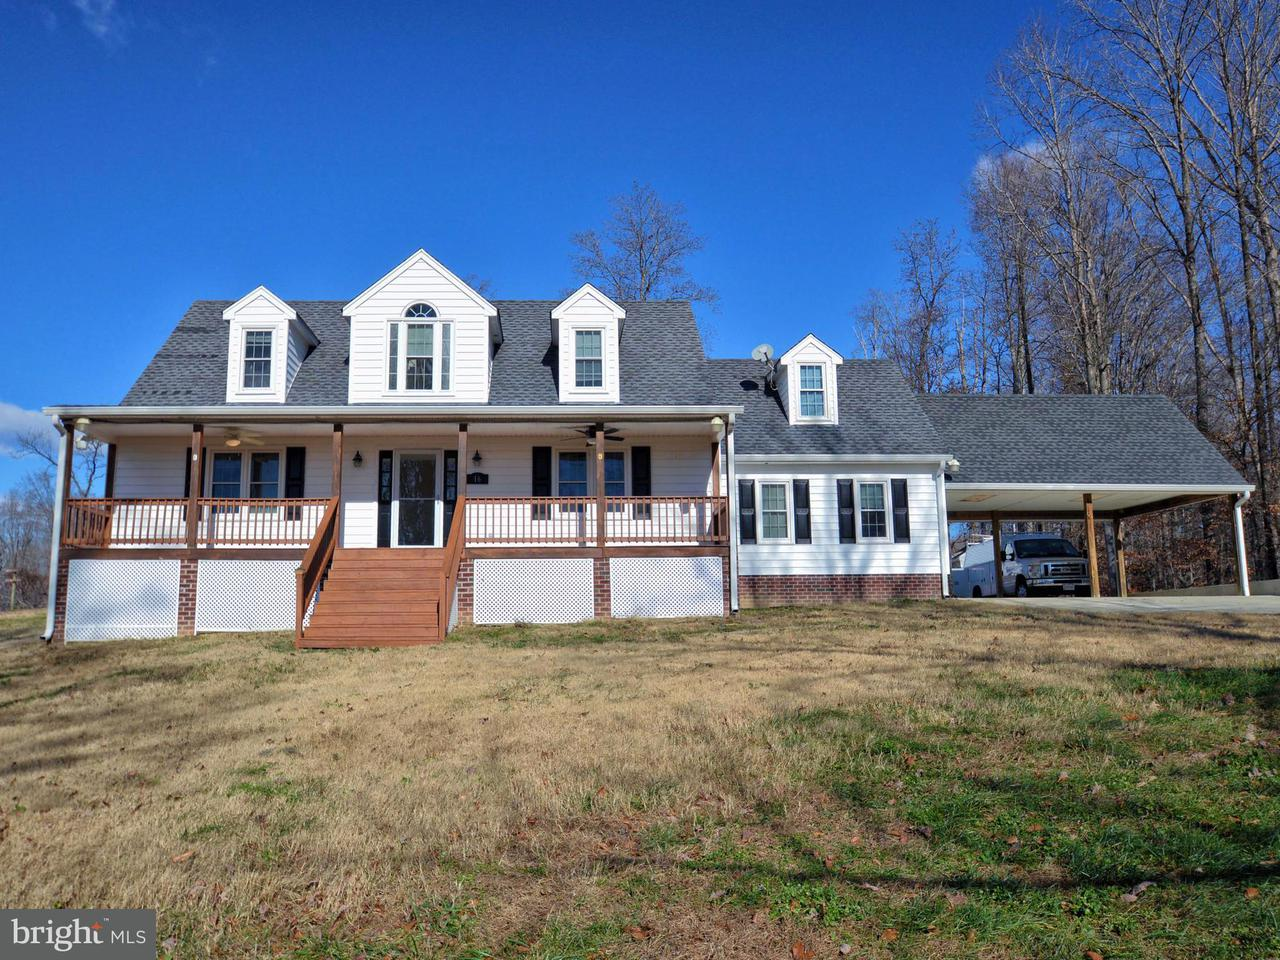 Other Residential for Rent at 2167 Harts Mill Rd Mineral, Virginia 23117 United States